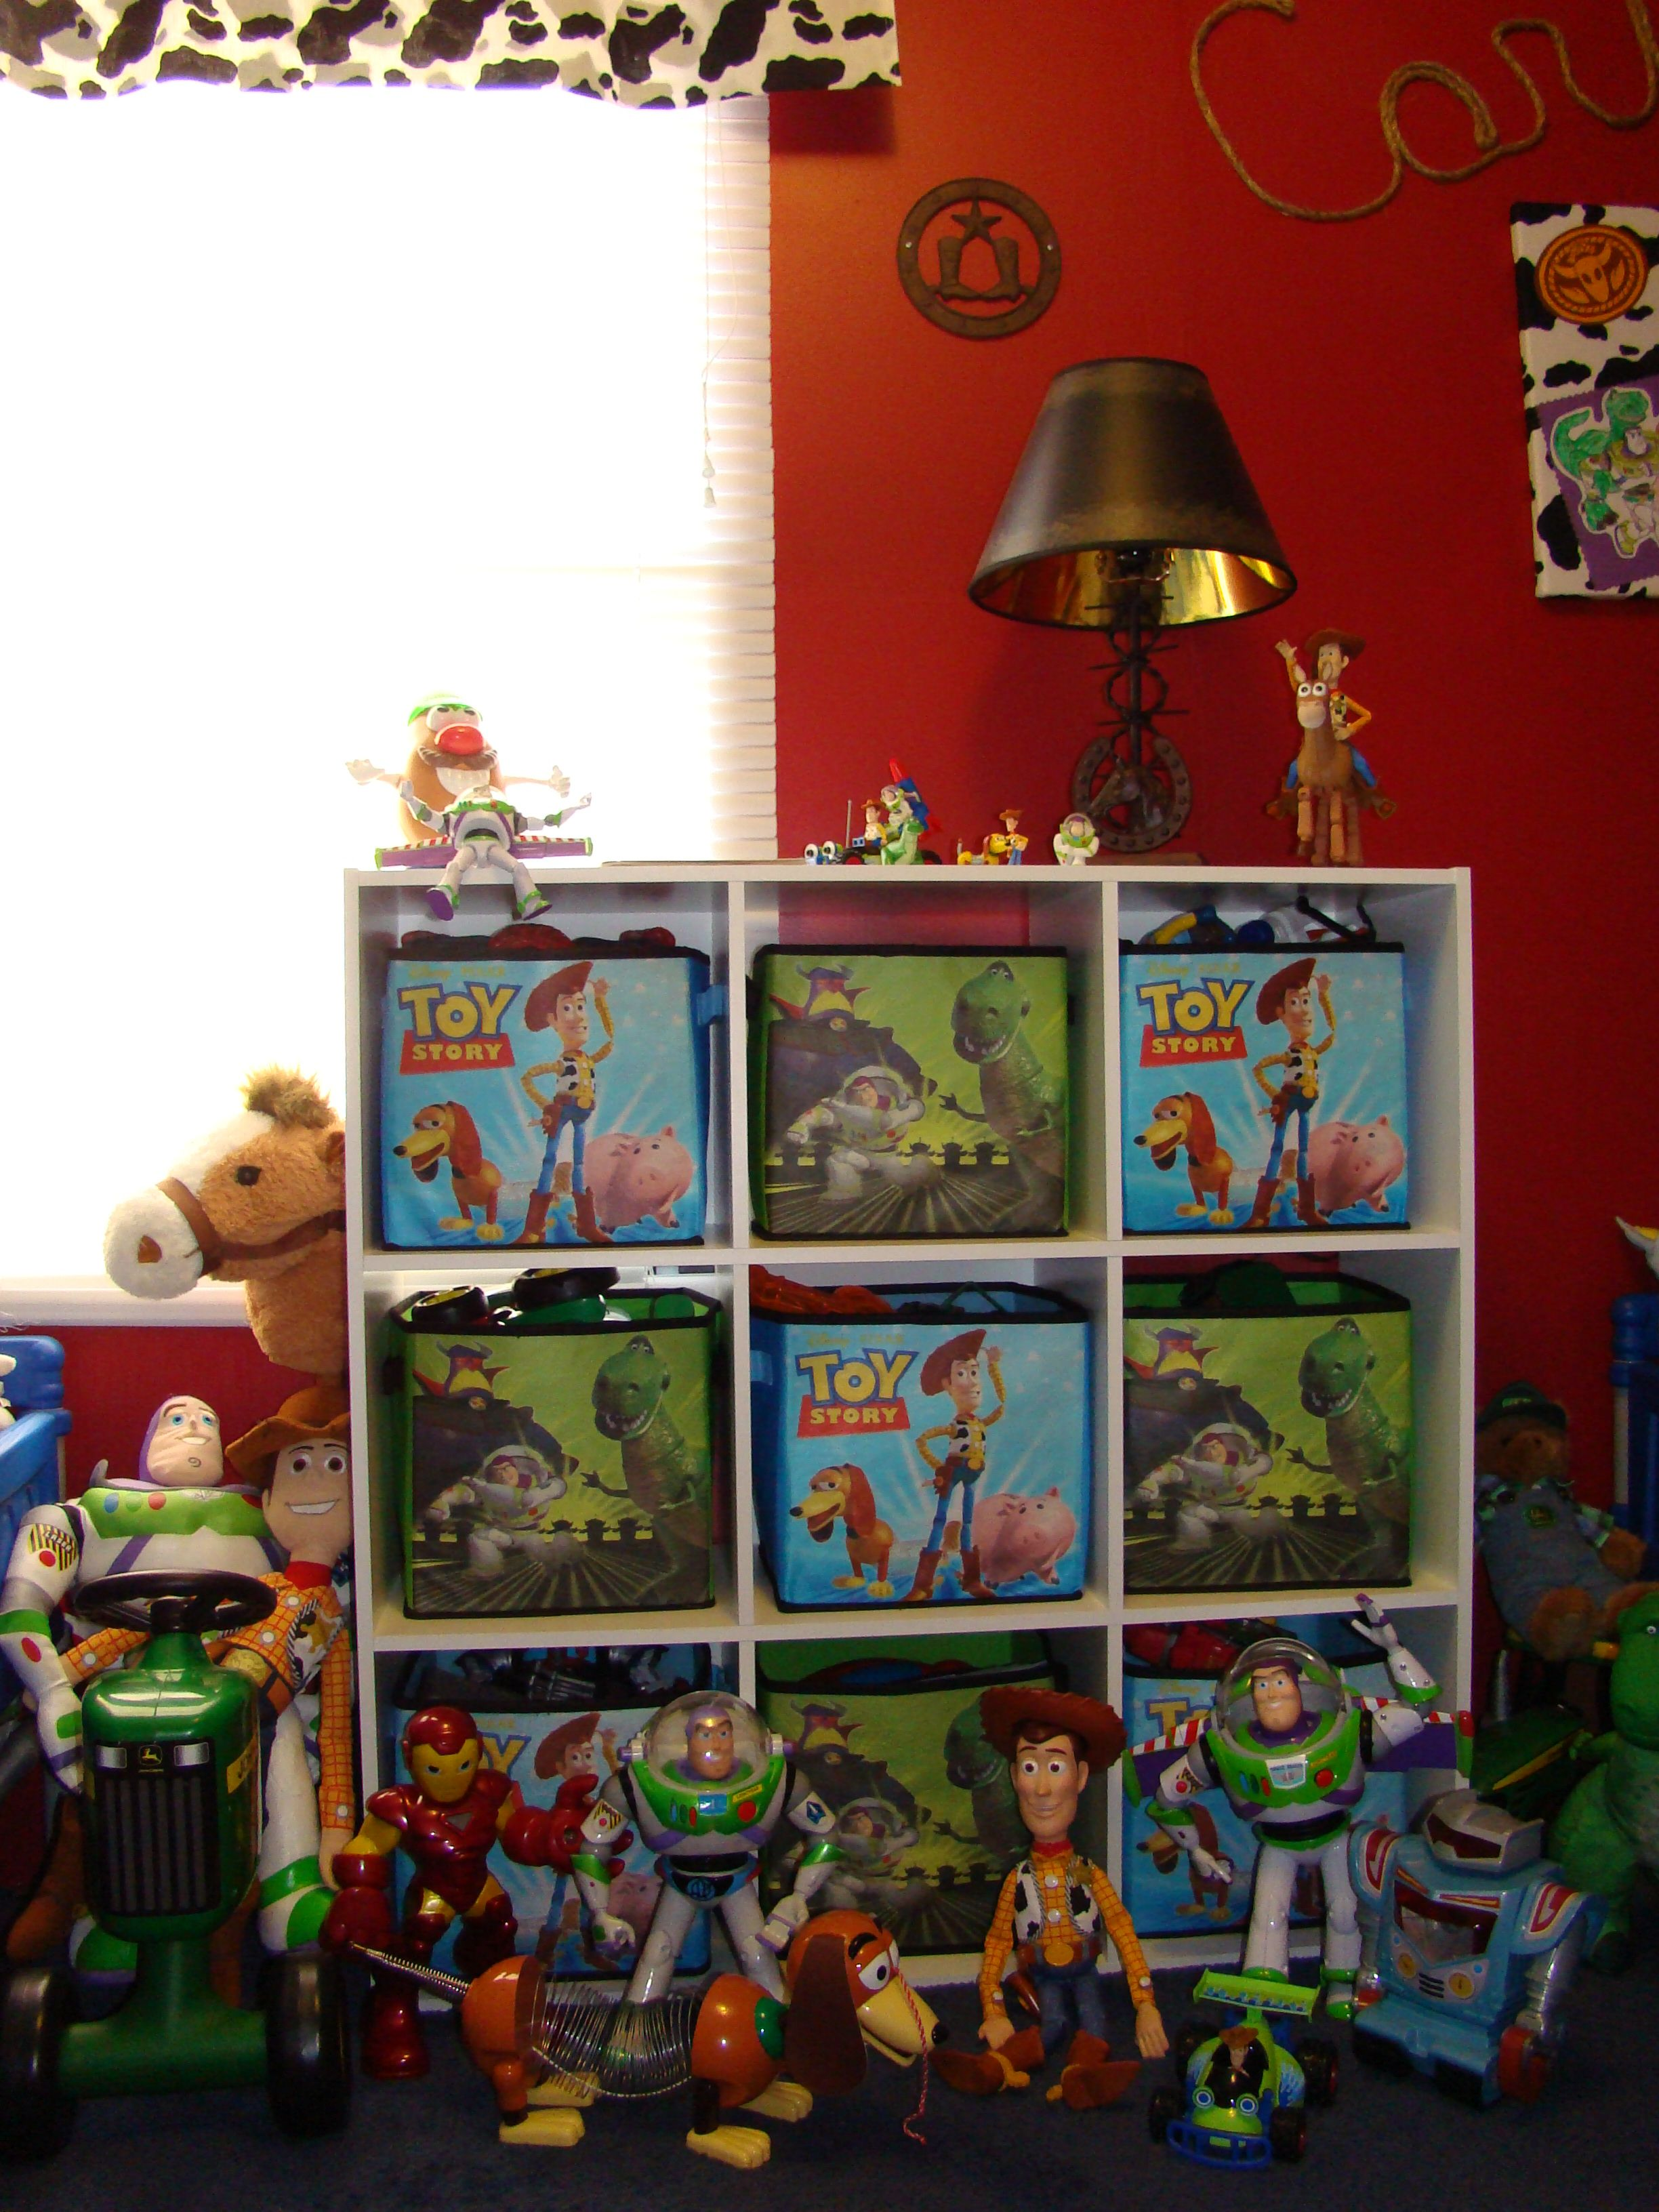 Toy Story Room Like The Cubbies And Toy Story Baskets Toy Story Bedroom Toy Story Room Toy Story Nursery